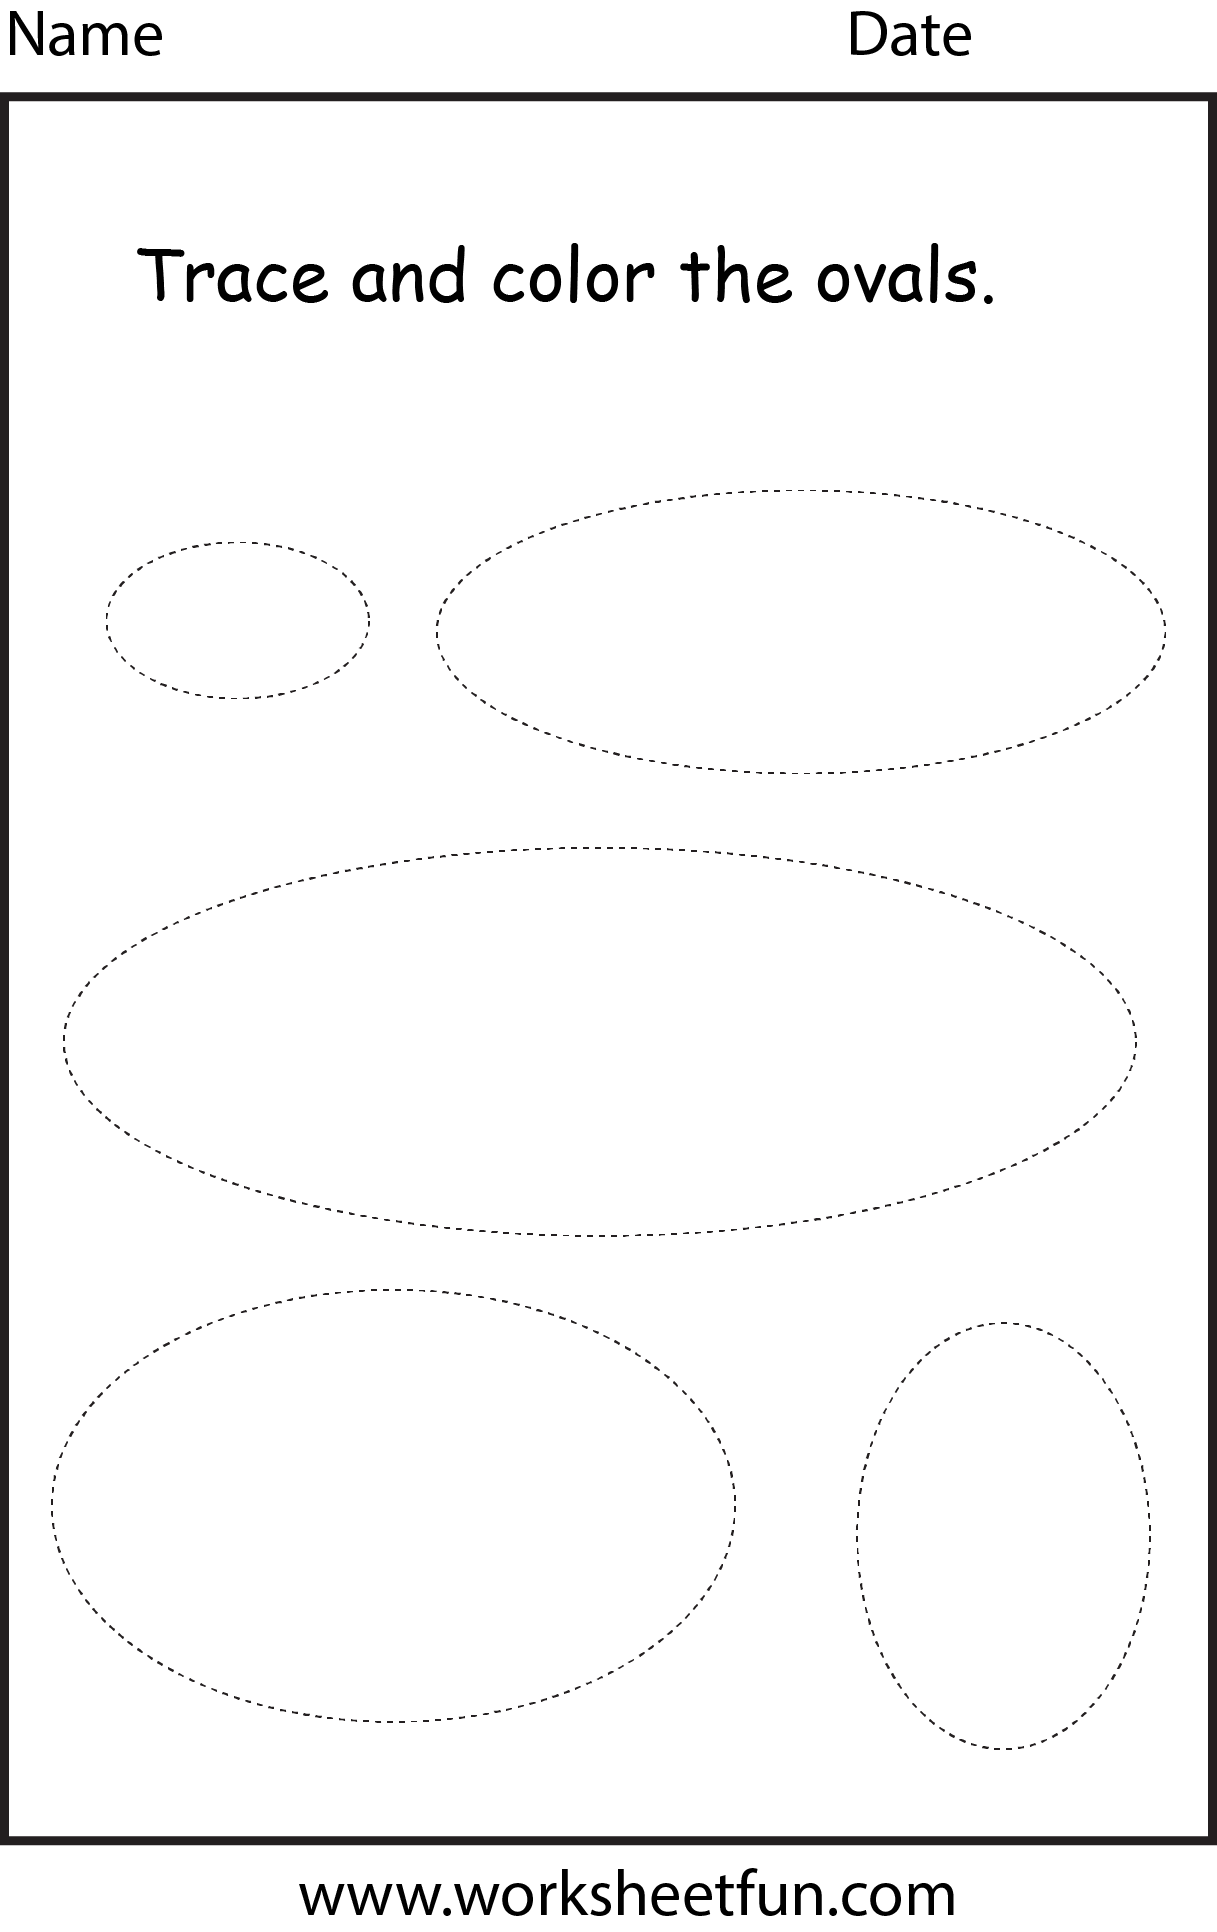 Shape Oval 1 Worksheet Free Printable Worksheets Worksheetfun